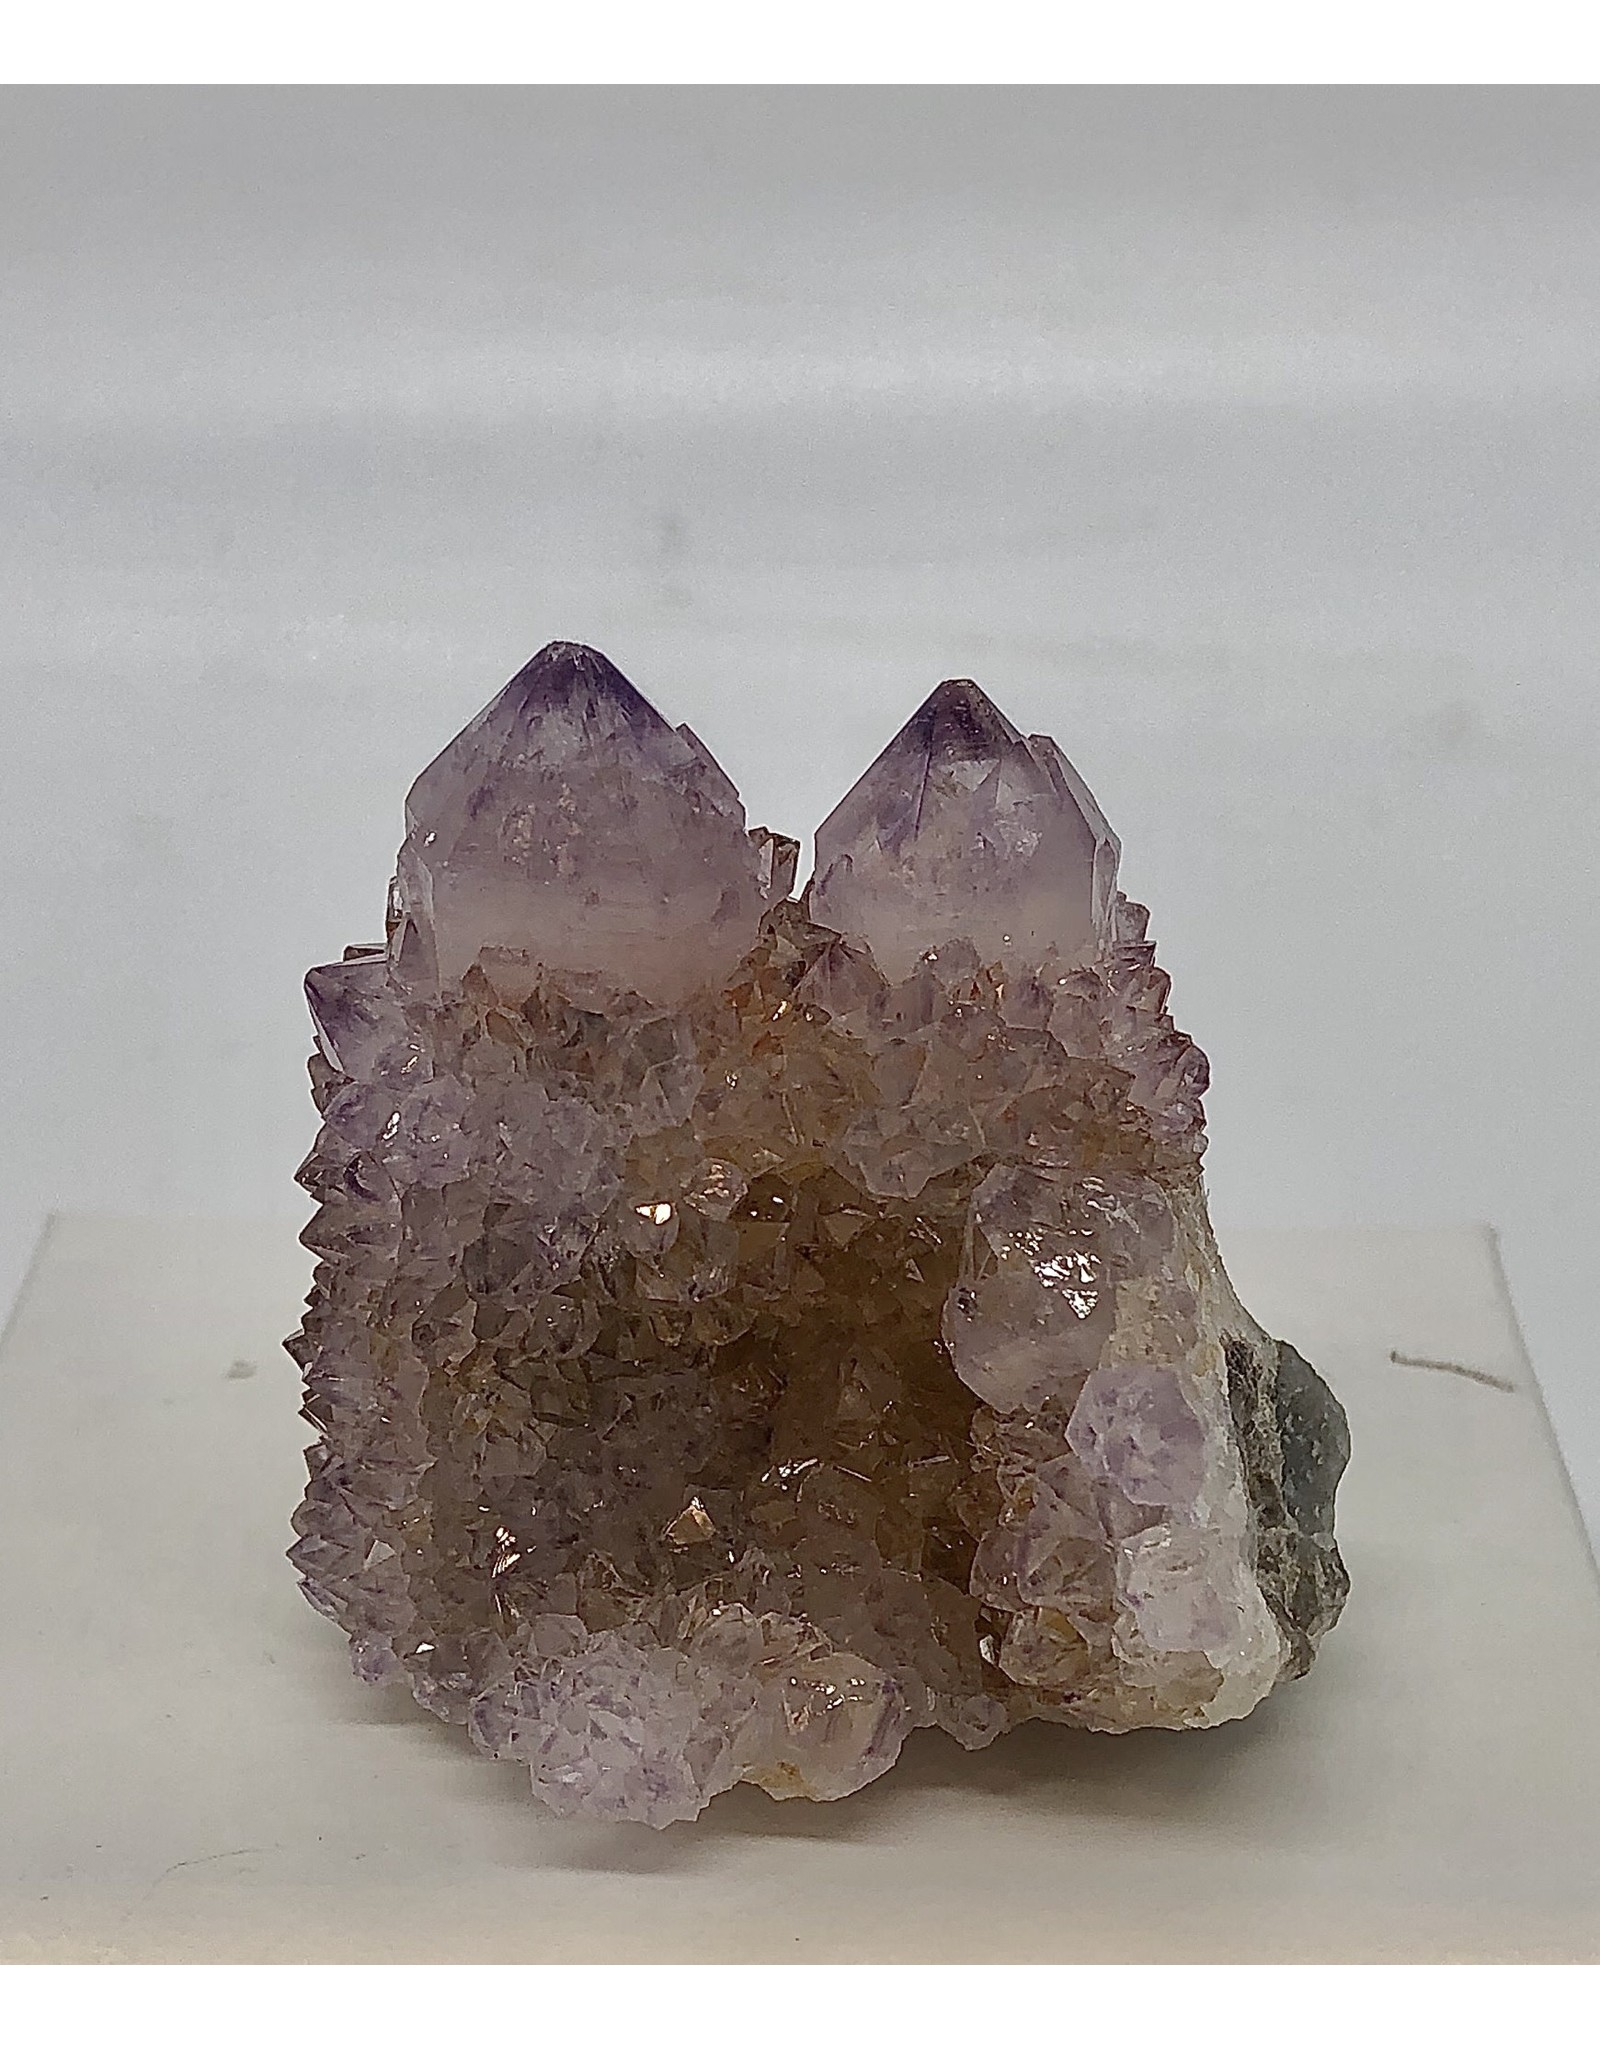 Spirit Amethyst (Mpumalanga, South Africa) LARGE